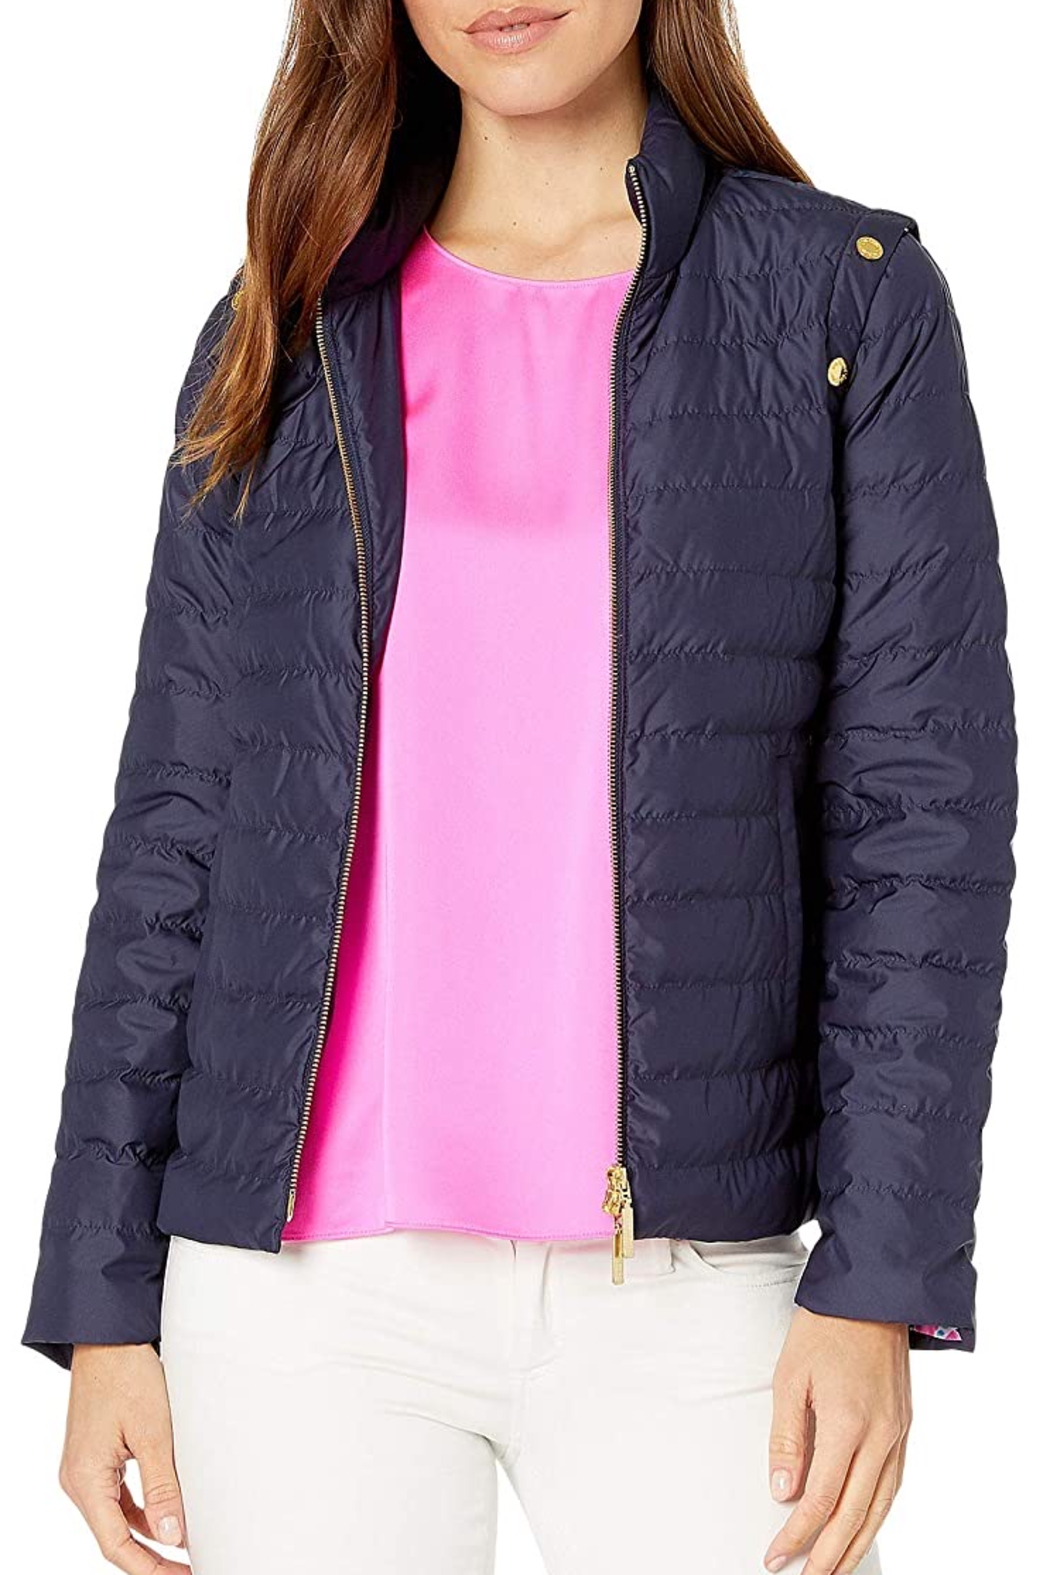 Lilly Pulitzer  Haisley puffer jacket - Main Image